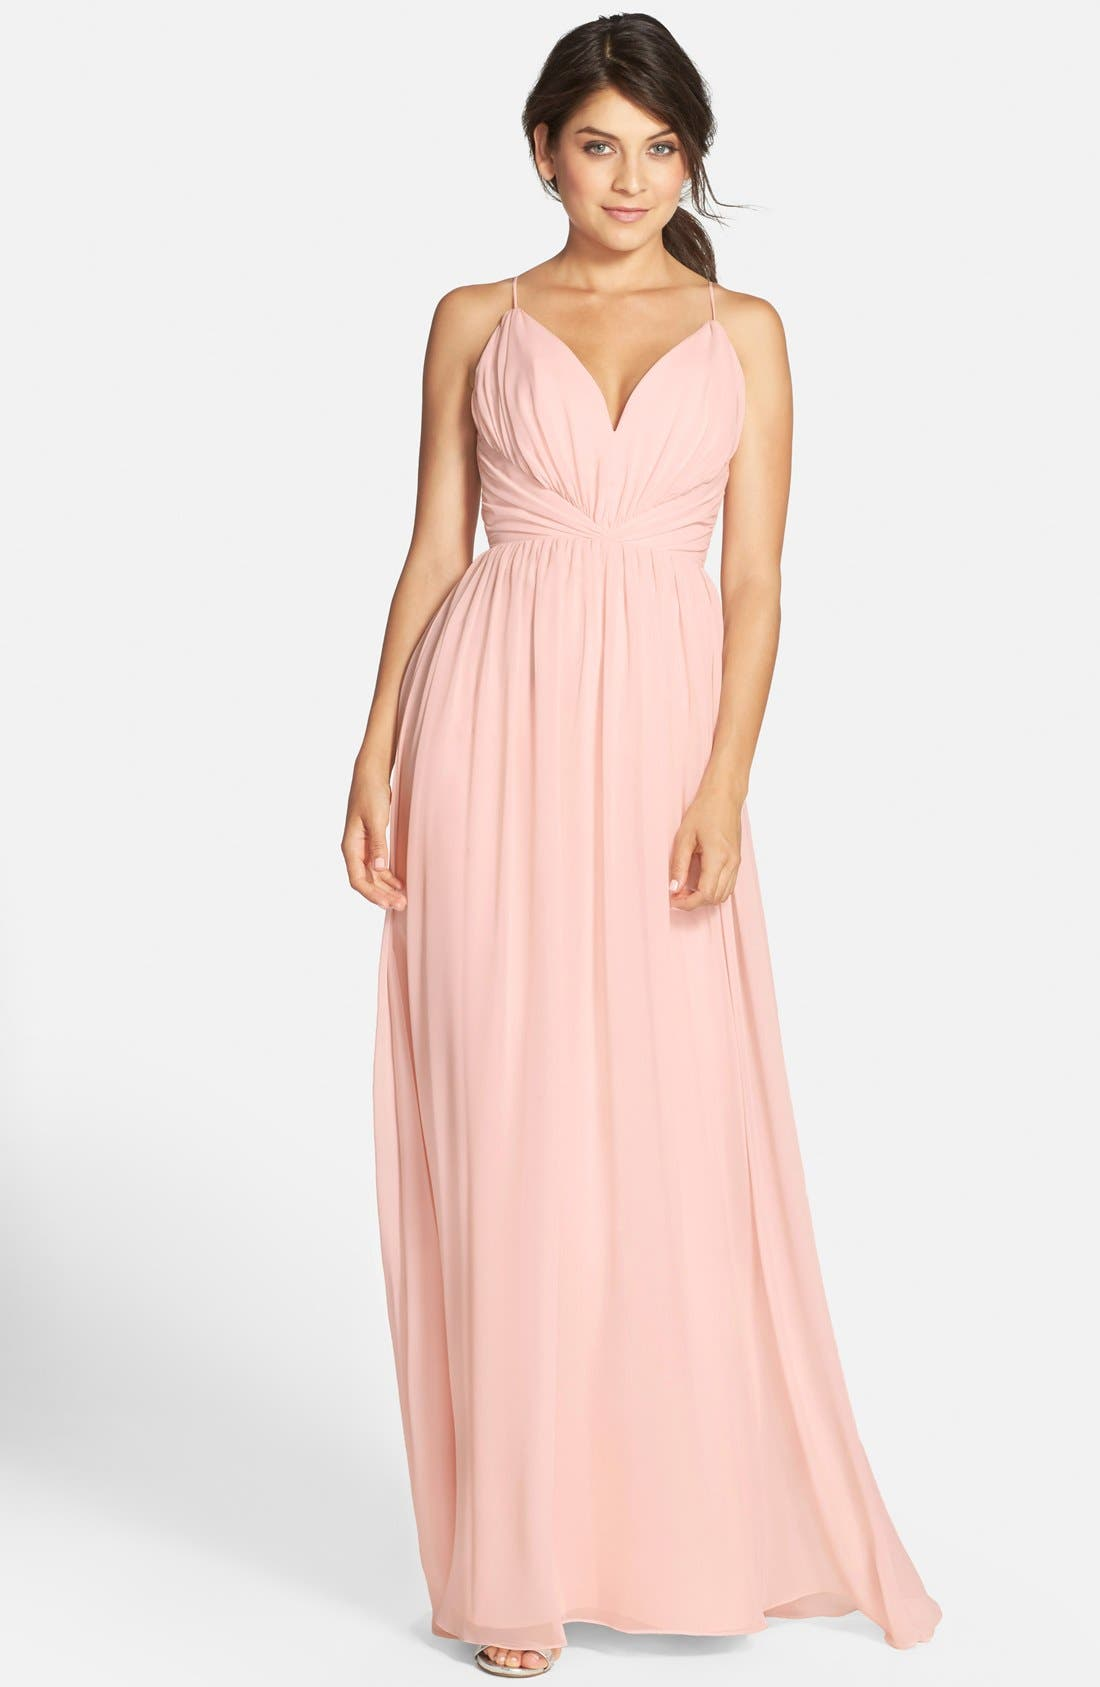 Alternate Image 1 Selected - Jim Hjelm Occasions Draped V-Neck Chiffon Gown